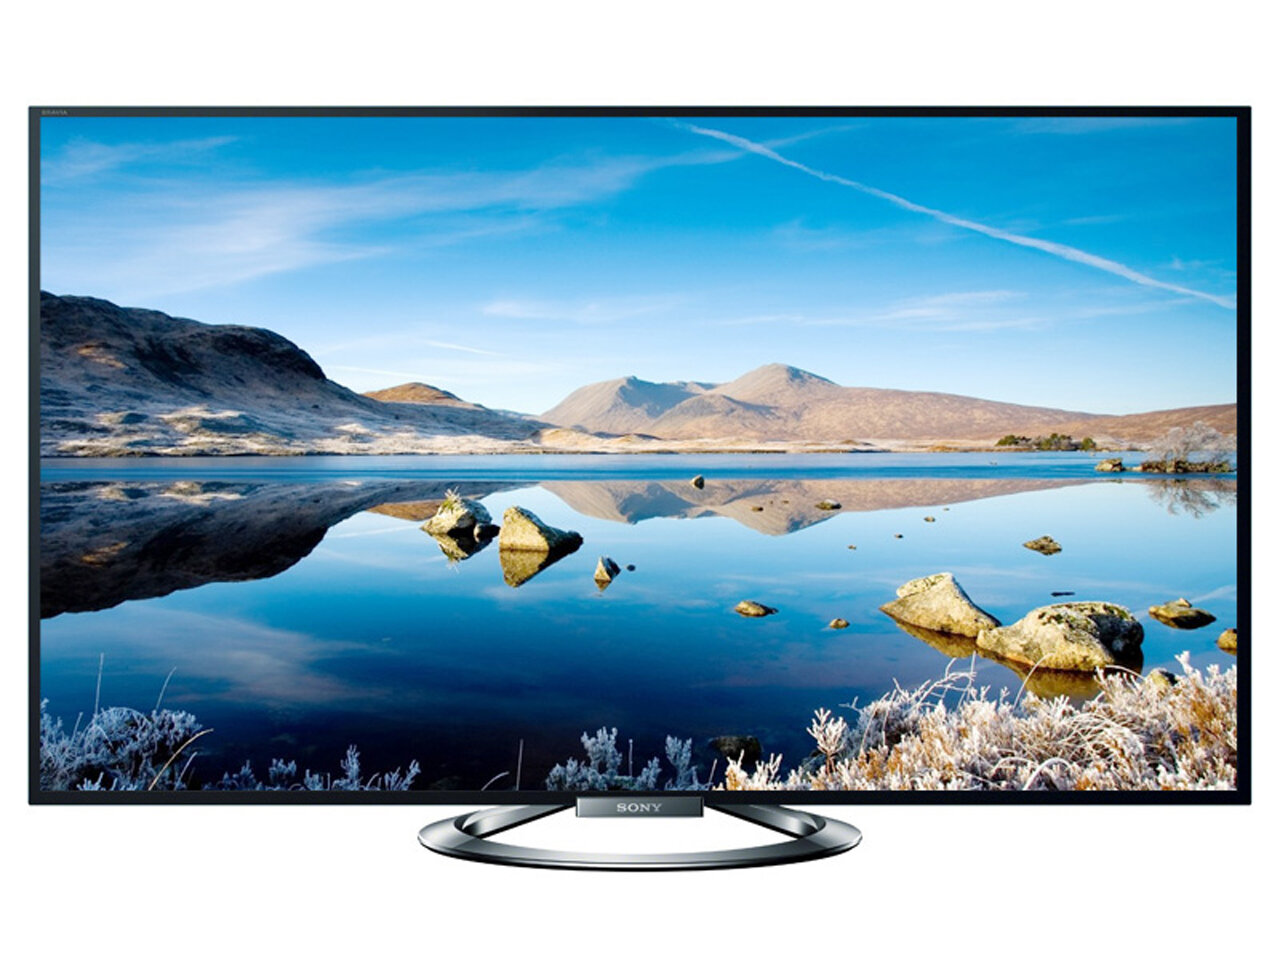 Tivi LED 3D Sony KDL-55W904A (KDL55W904A) - 55 inch, Full HD (1920 x 1080)